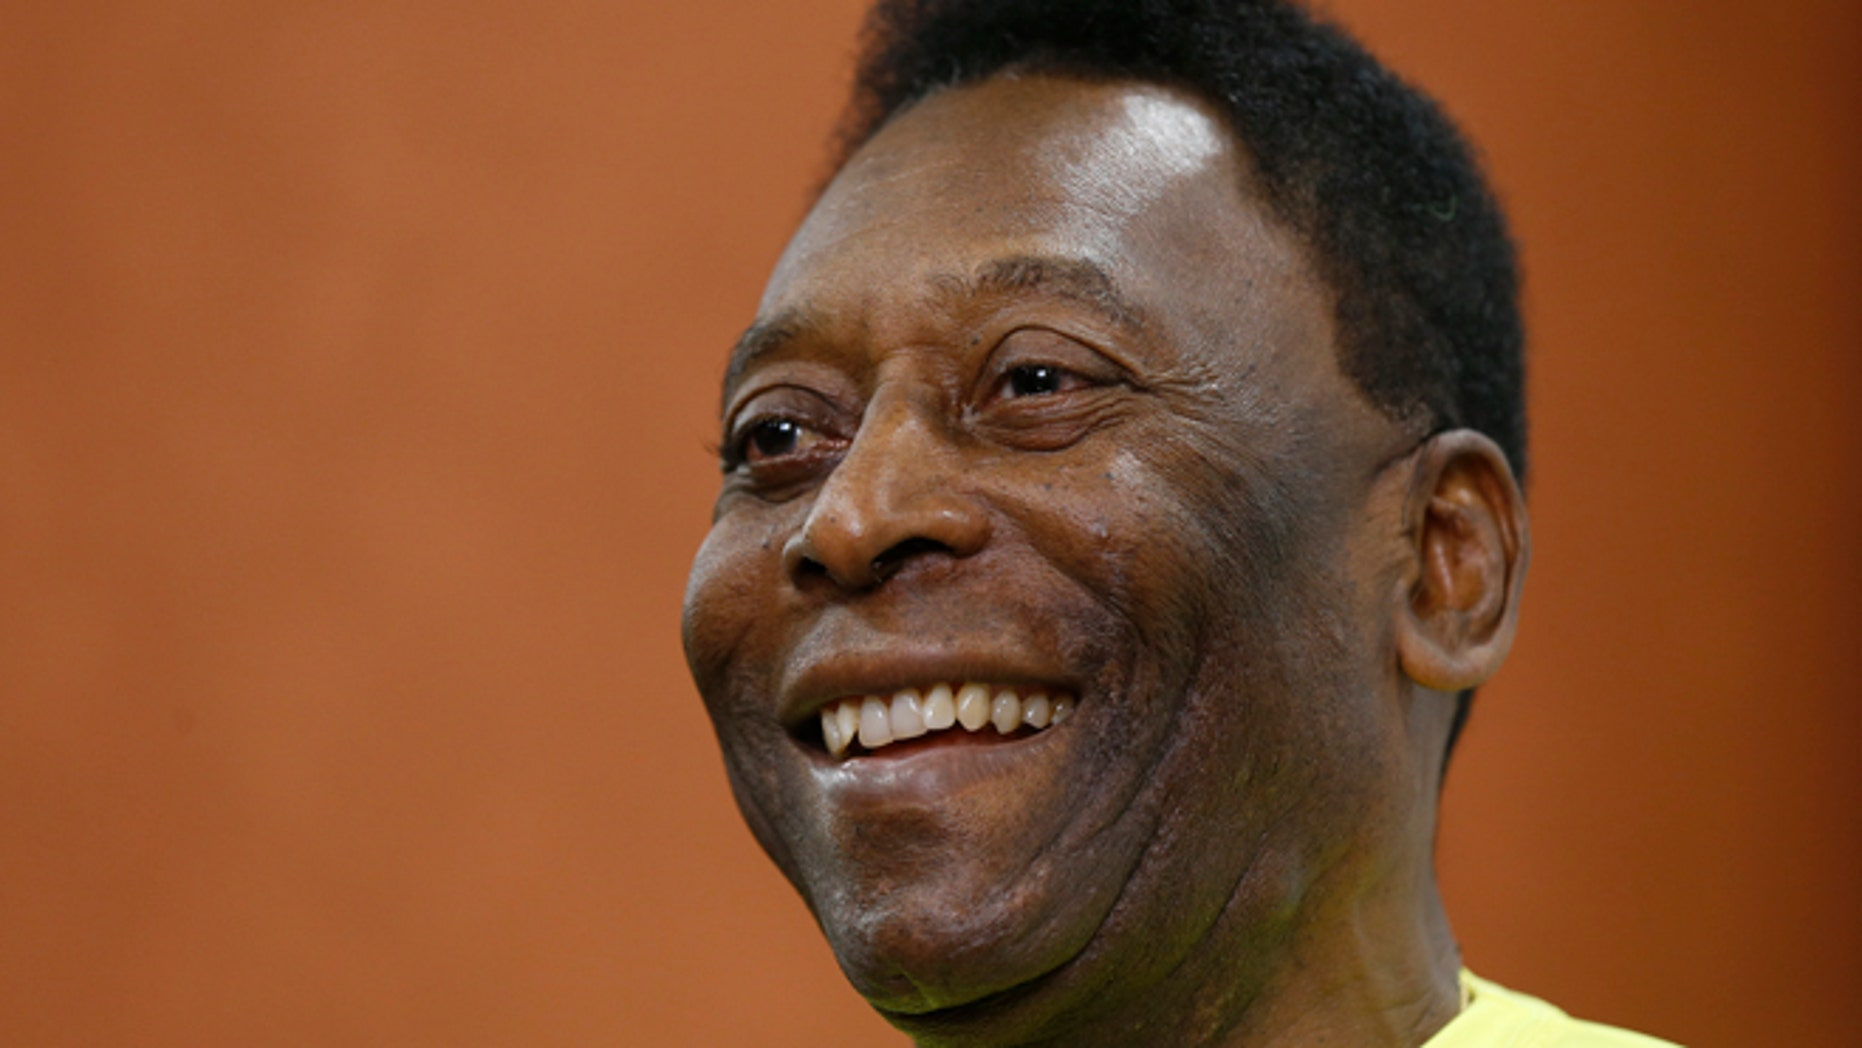 FILE - In this March 20, 2015 file photo, Brazilian soccer legend Pele smiles during a media opportunity at a restaurant in London. Pele said on Friday, Aug. 5, 2016 that his poor health will keep him from attending the opening ceremony of the Rio Olympics.  (AP Photo/Kirsty Wigglesworth, File)